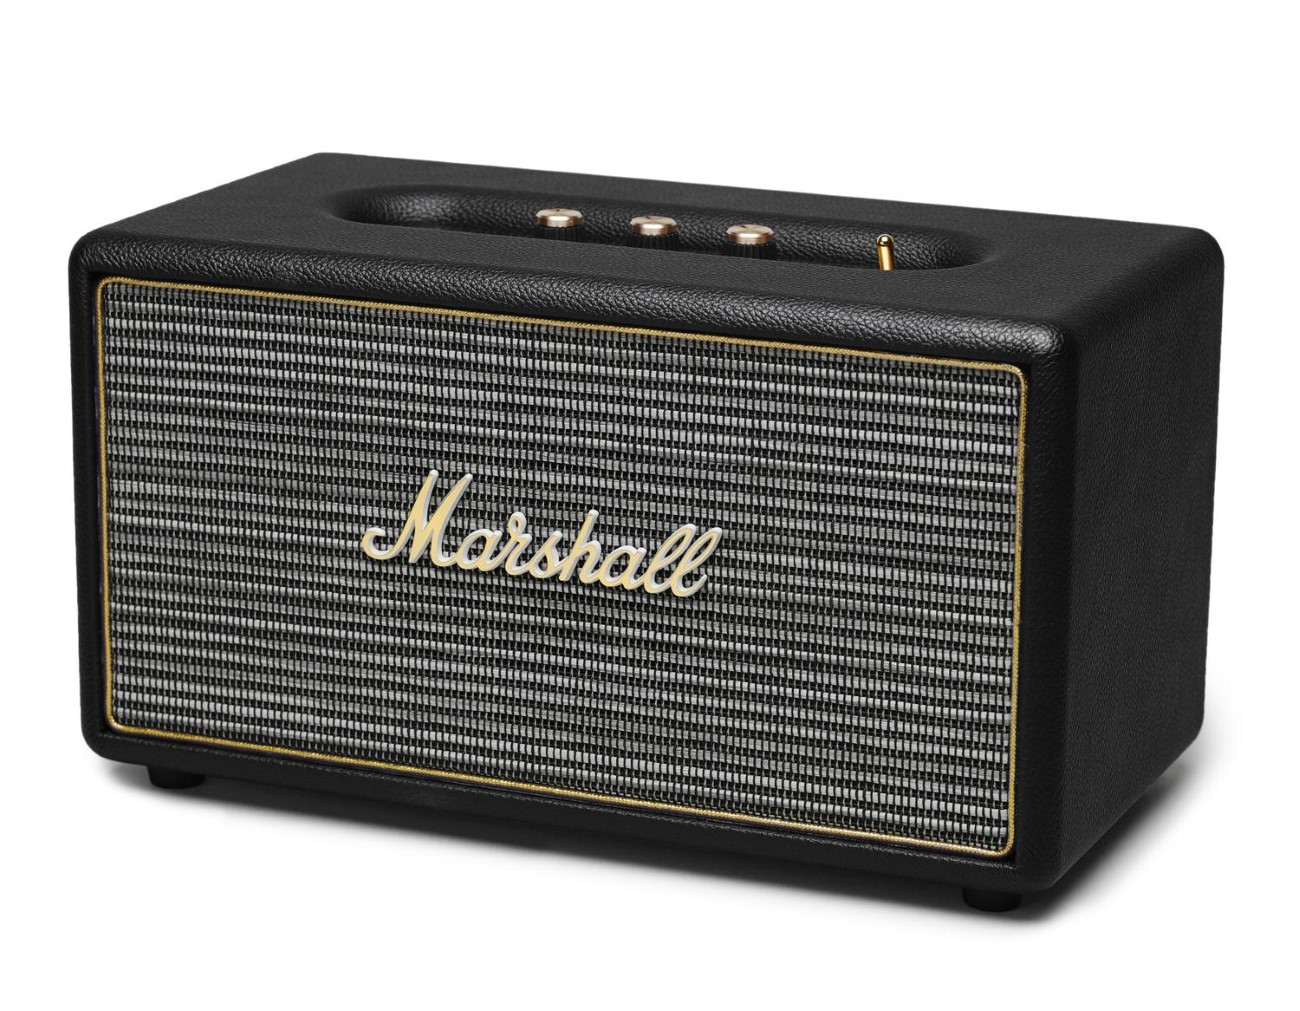 Beautiful Box marshall stanmore speaker for Home Improvement Home Accesories Ideas